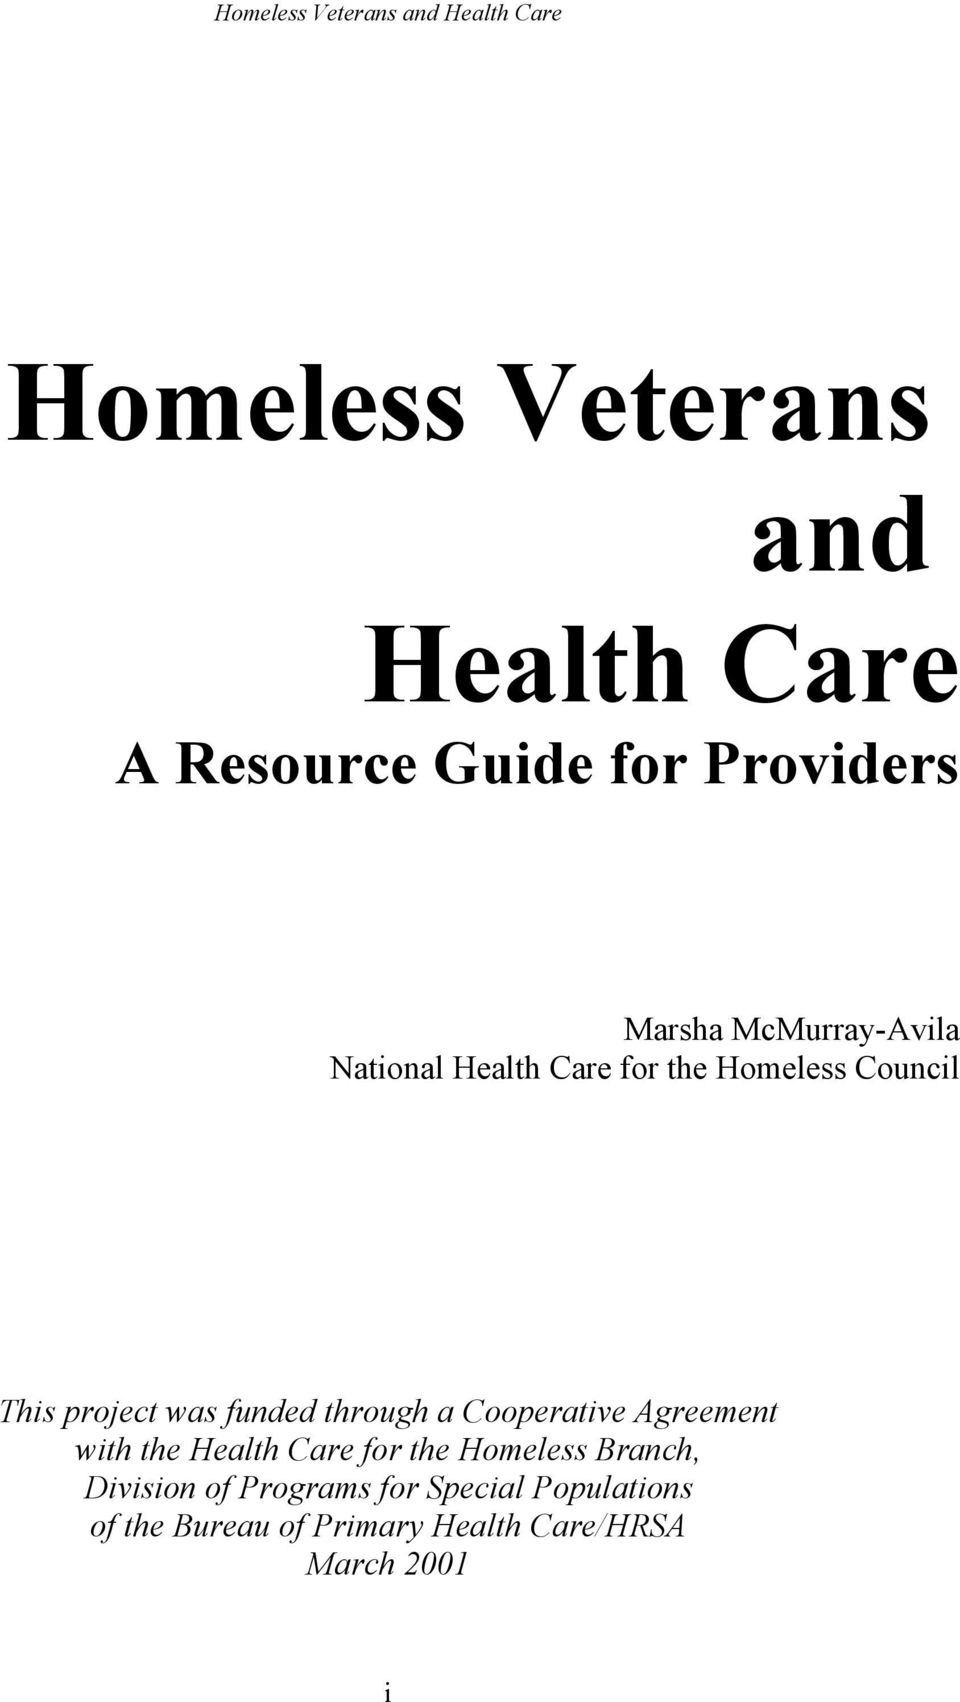 funded through a Cooperative Agreement with the Health Care for the Homeless